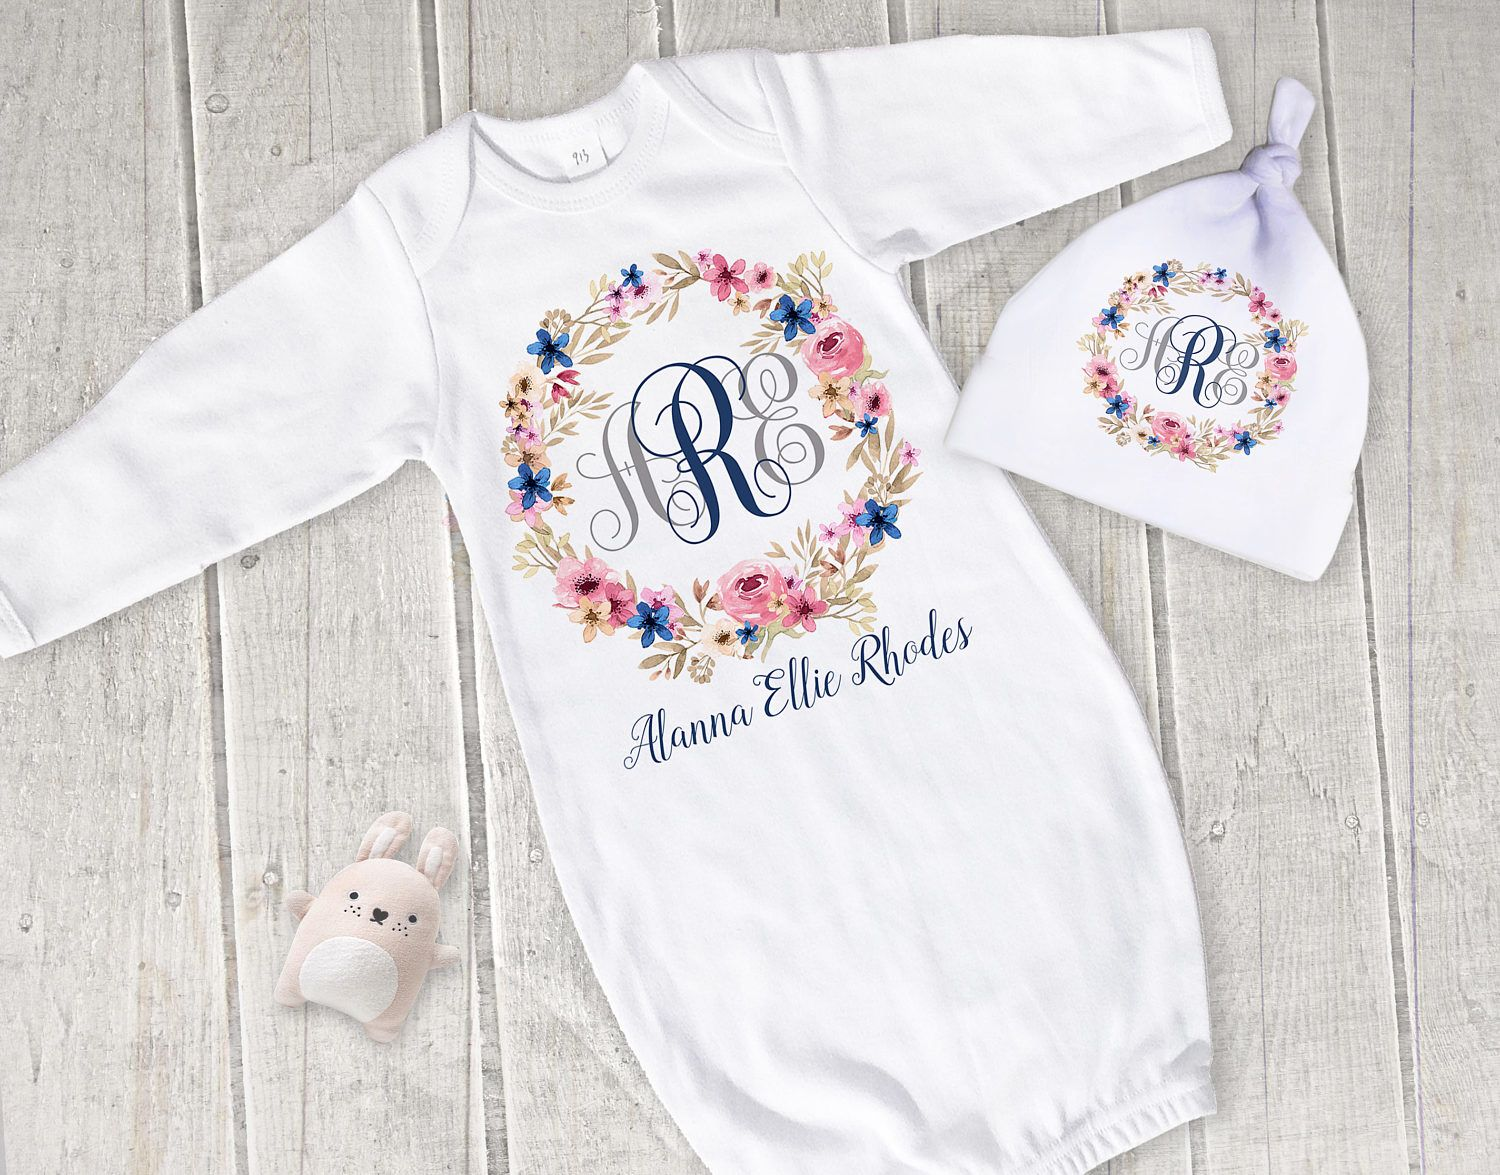 Monogrammed Baby Gown, Personalzied Baby Outfit, Name Baby Gown ...